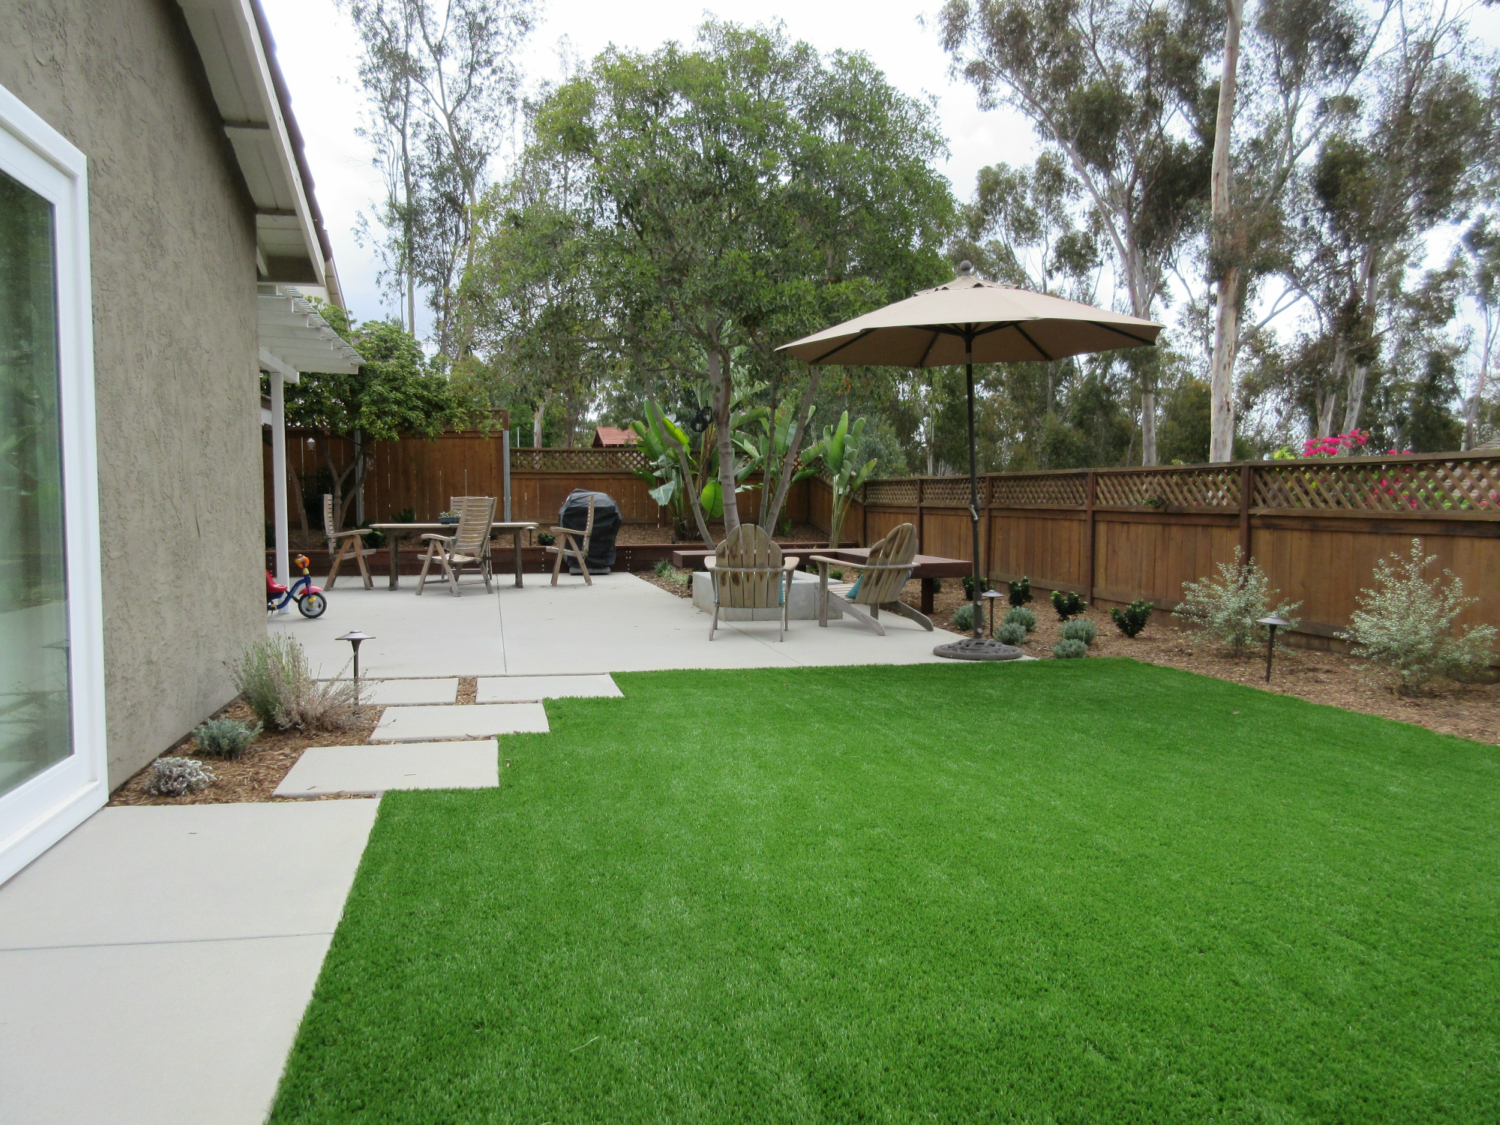 Backyard Landscape Design Letz Design pertaining to 13 Clever Ideas How to Build Backyard Landscaping Ideas San Diego